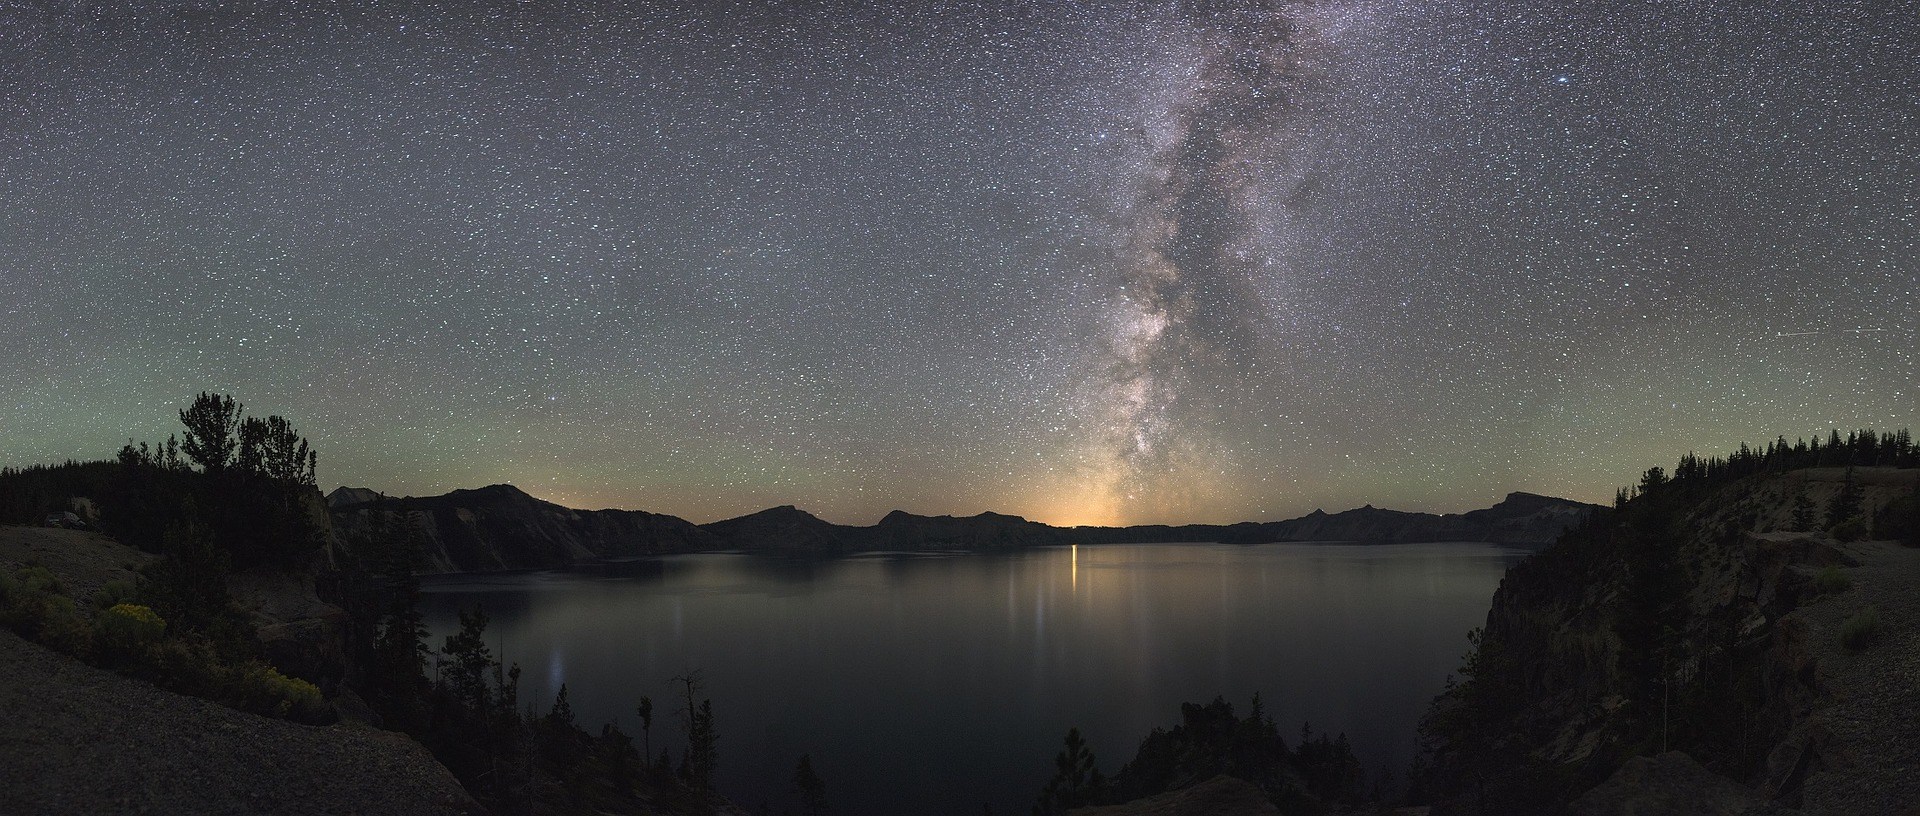 Oregon Slot Machine Casino Gambling 2018: Crater Lake at night.